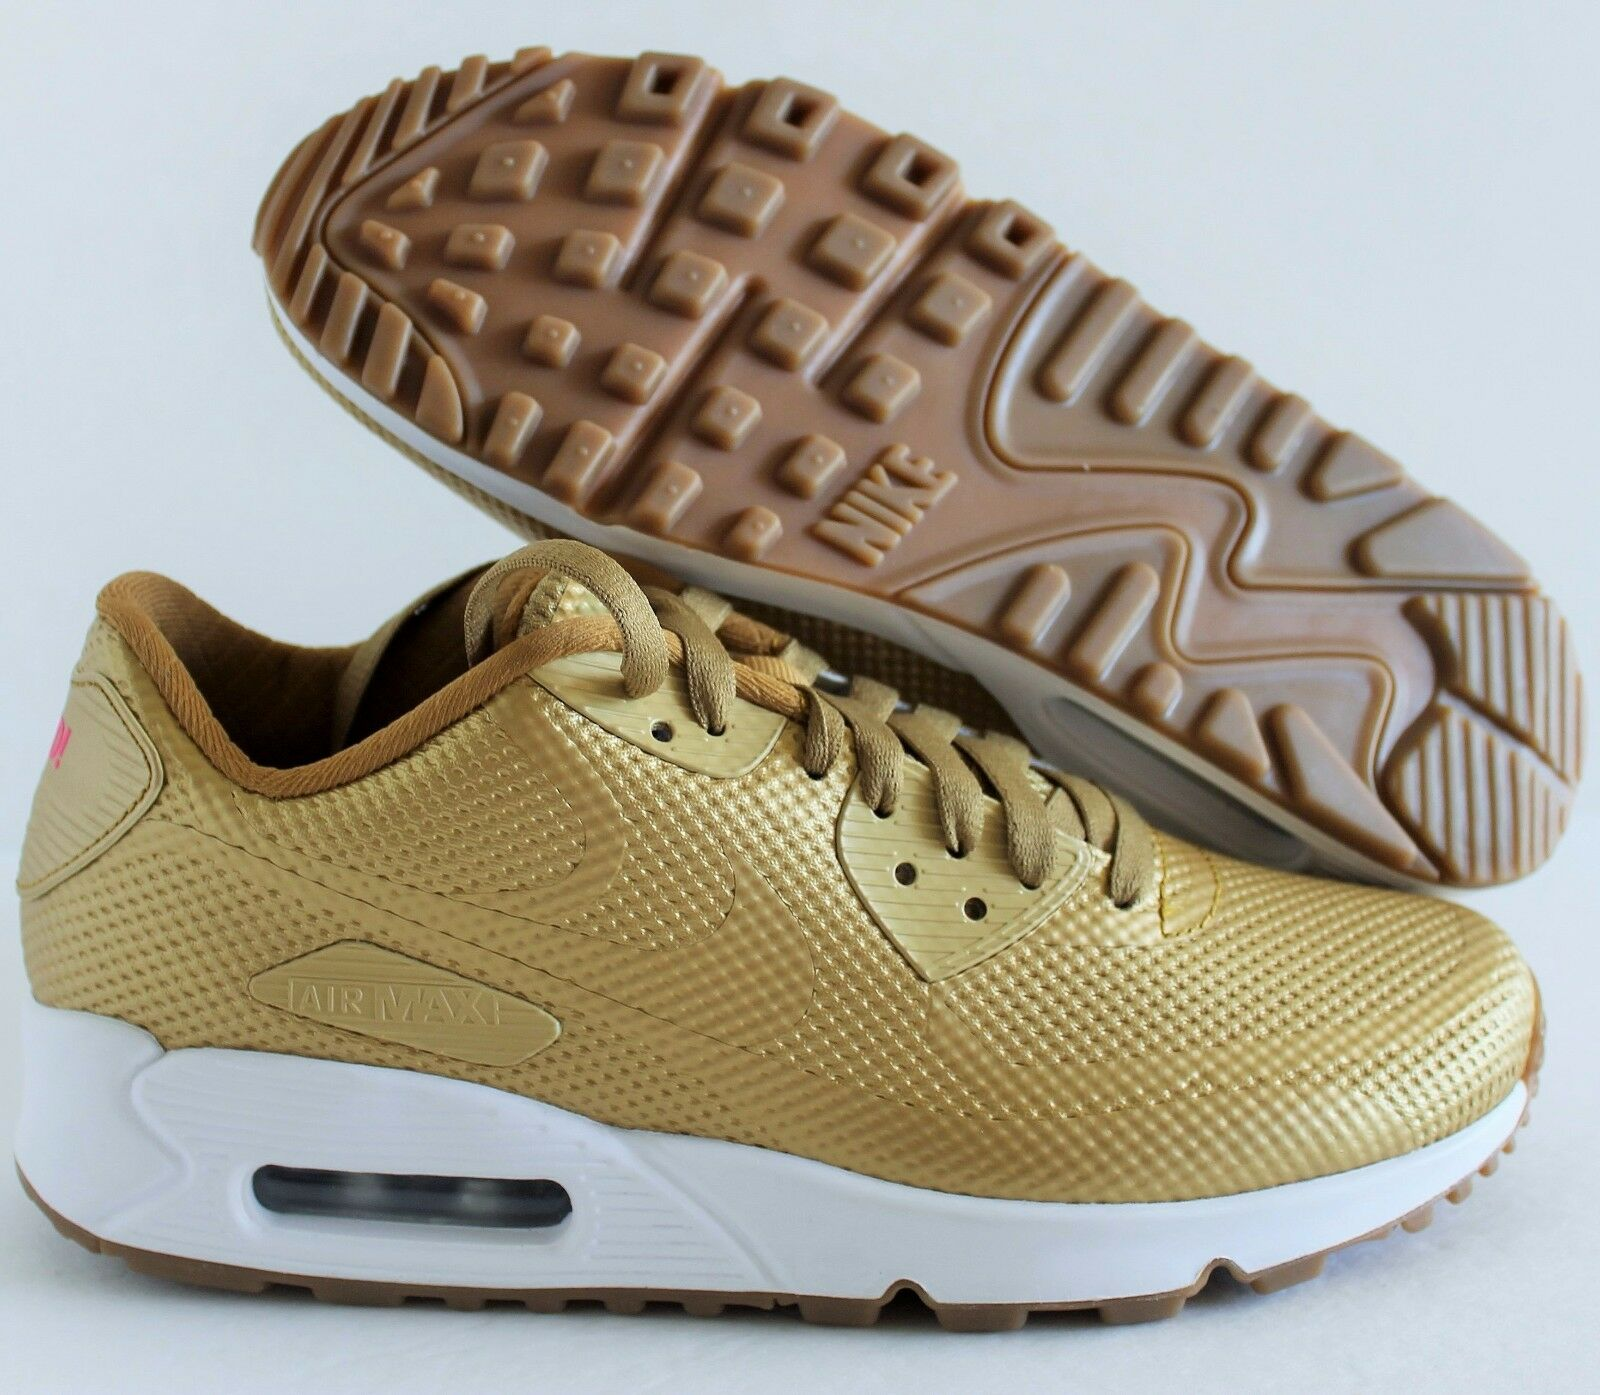 NIKE WOMEN AIR MAX 90 HYPERFUSE PREMIUM iD gold-WHITE SZ 6.5 [822578-997]